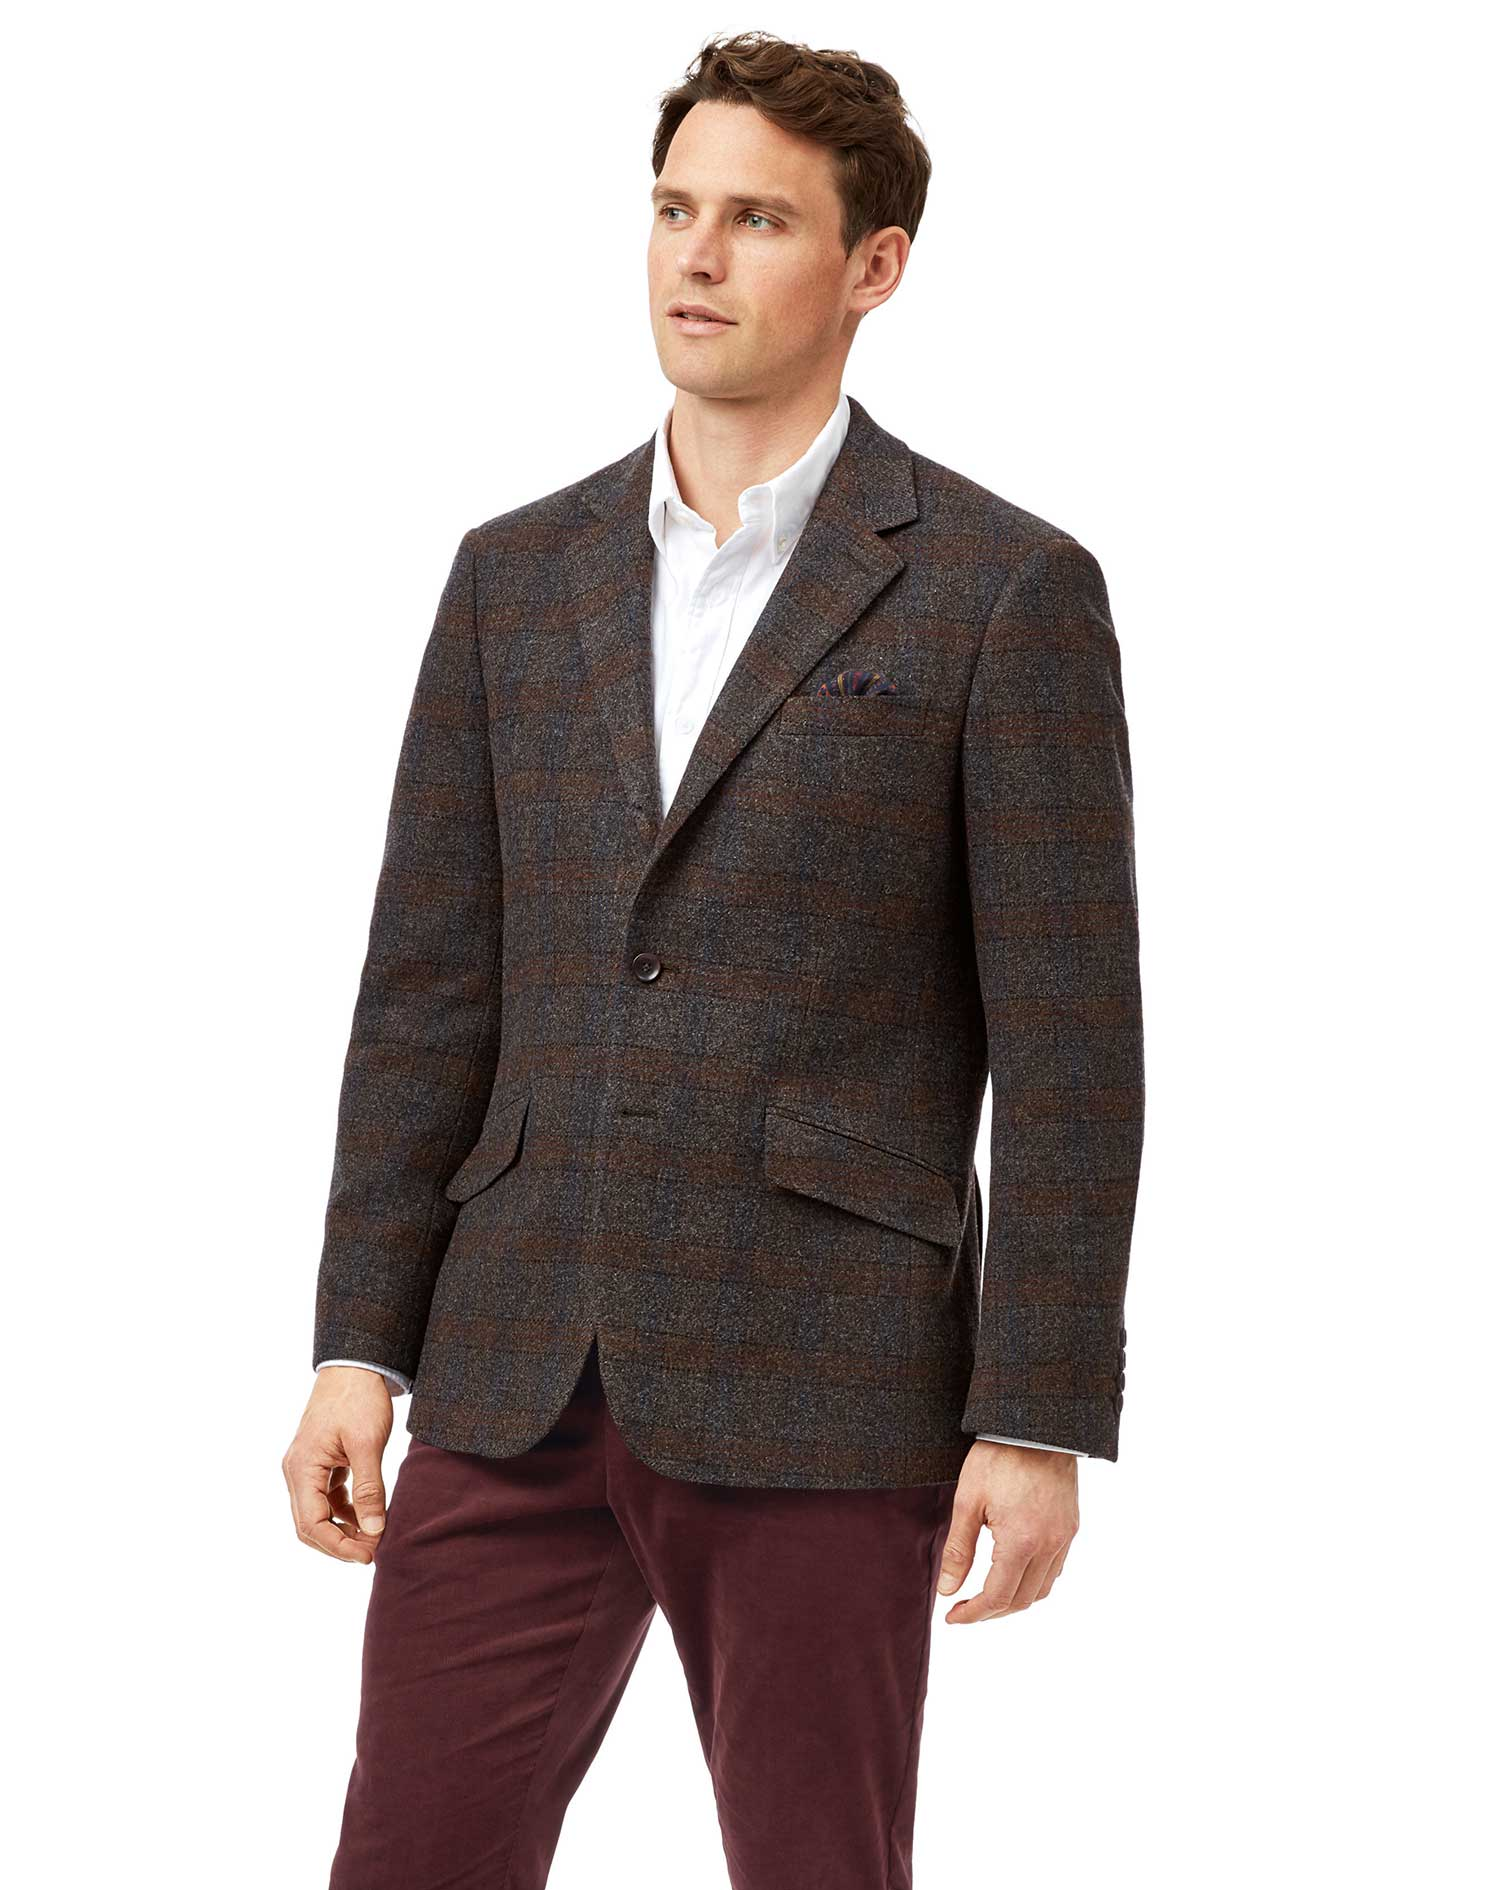 Classic Fit Brown Checkered Textured Wool Jacket Size 40 Short by Charles Tyrwhitt